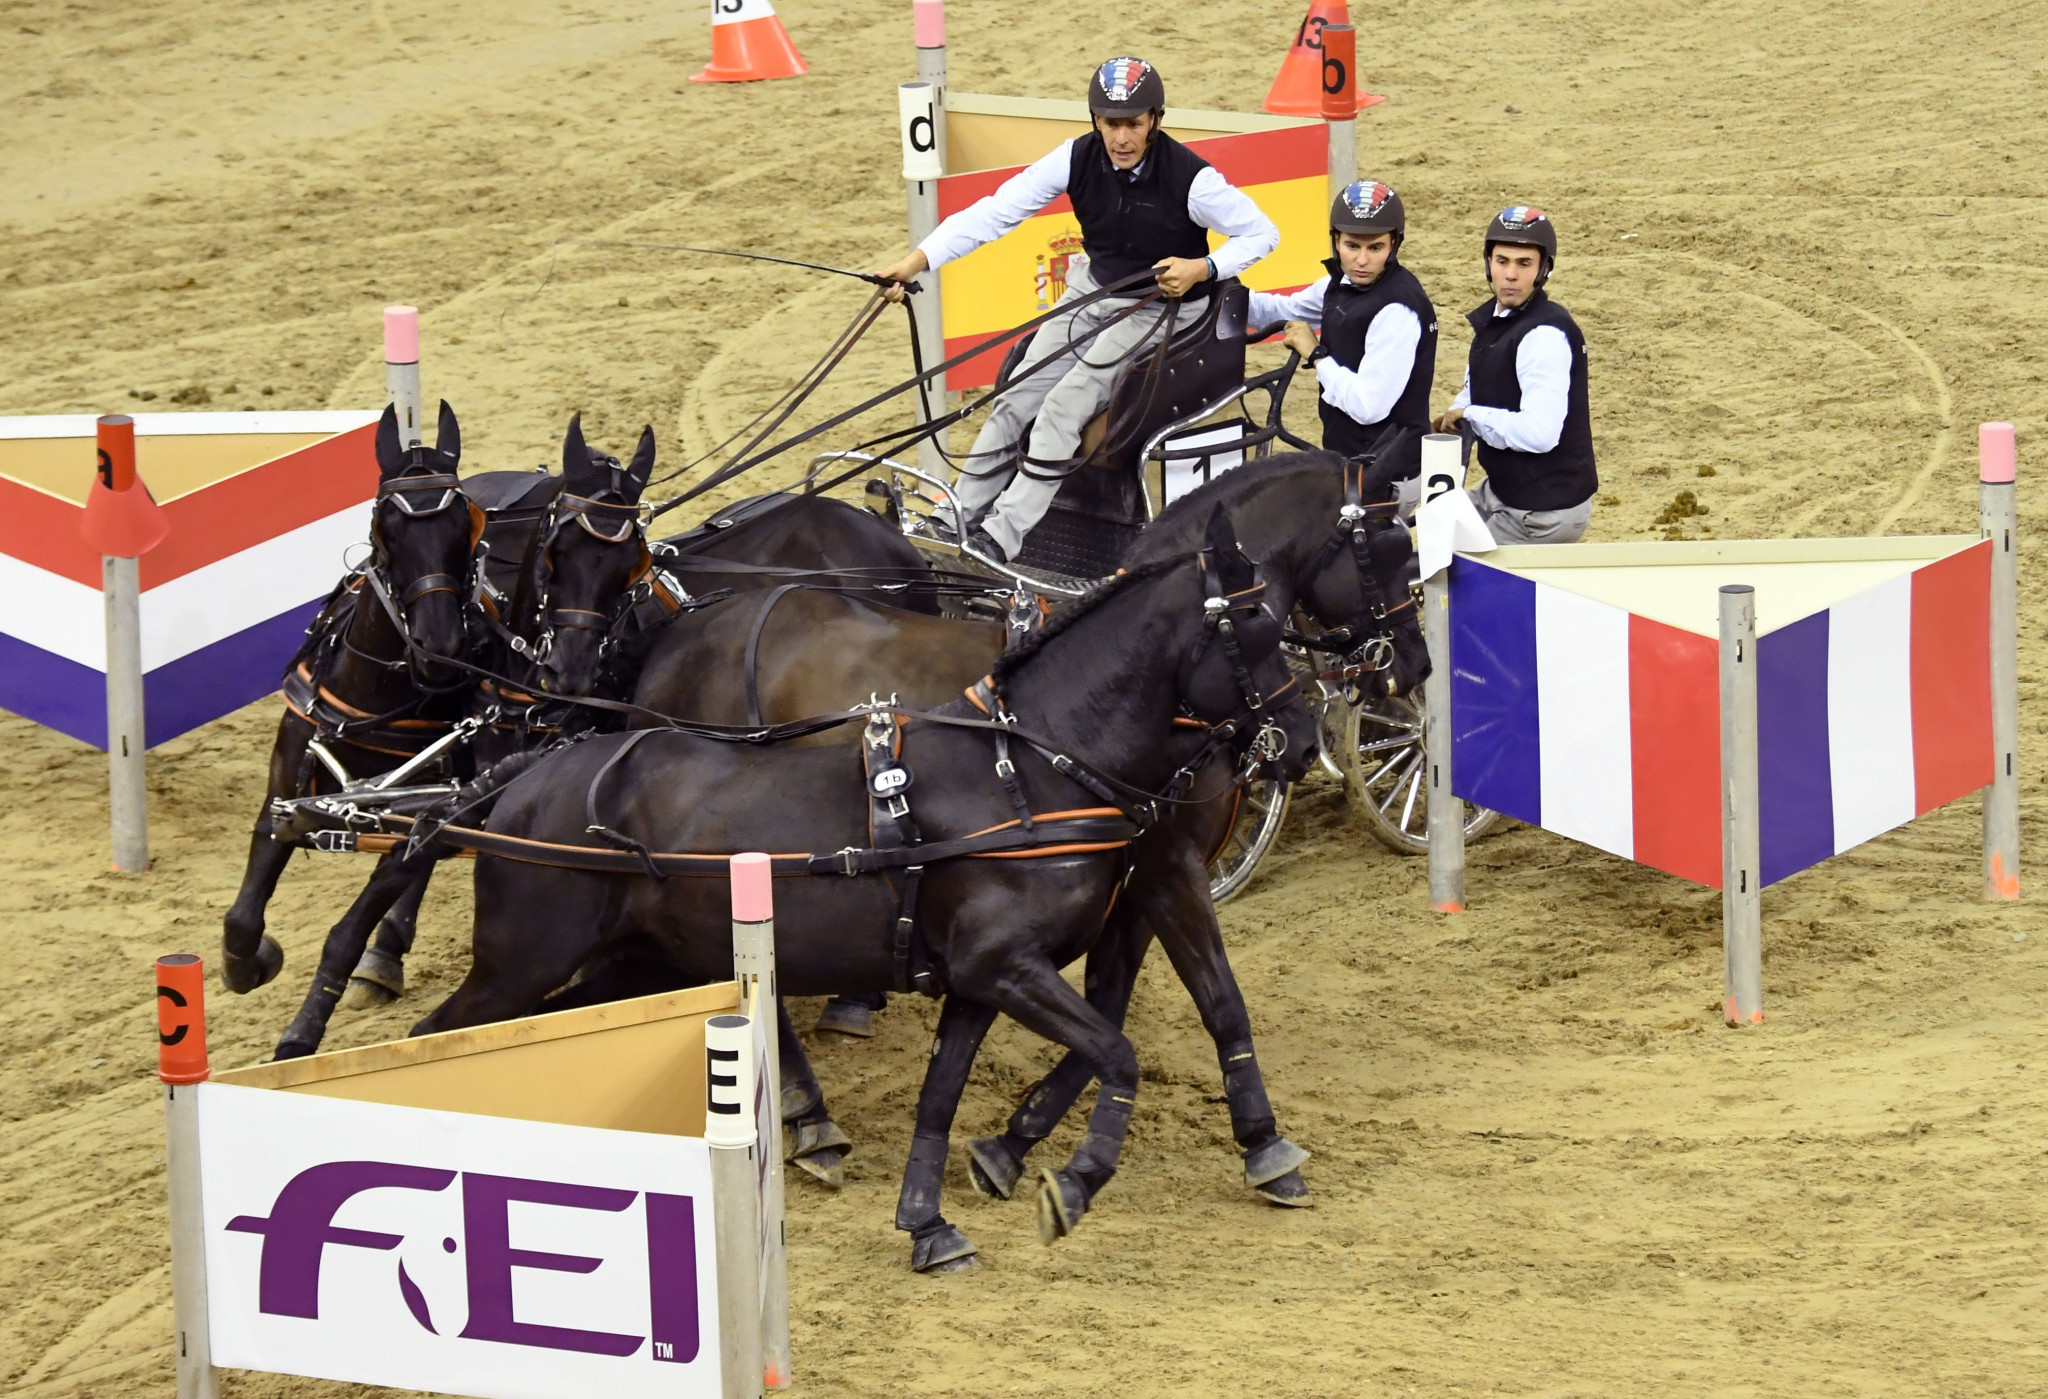 Increase in coronavirus cases forces last-minute cancellation of FEI Driving World Championships